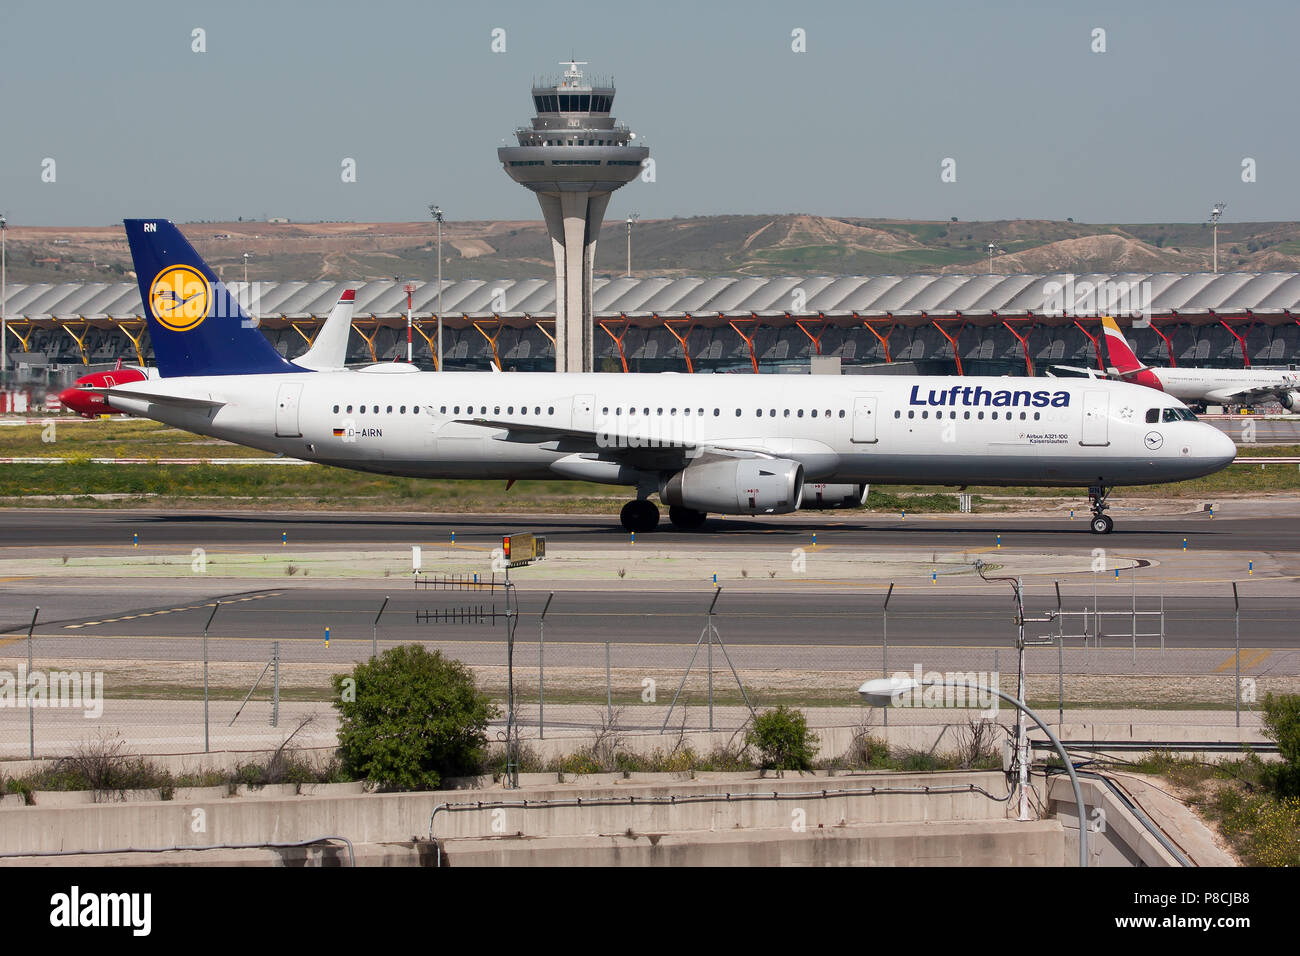 Madrid, Spain. 17th Apr, 2018. A Lufthansa Airbus A321 on the taxiway at Madrid Barajas airport. Credit: Fabrizio Gandolfo/SOPA Images/ZUMA Wire/Alamy Live News Stock Photo